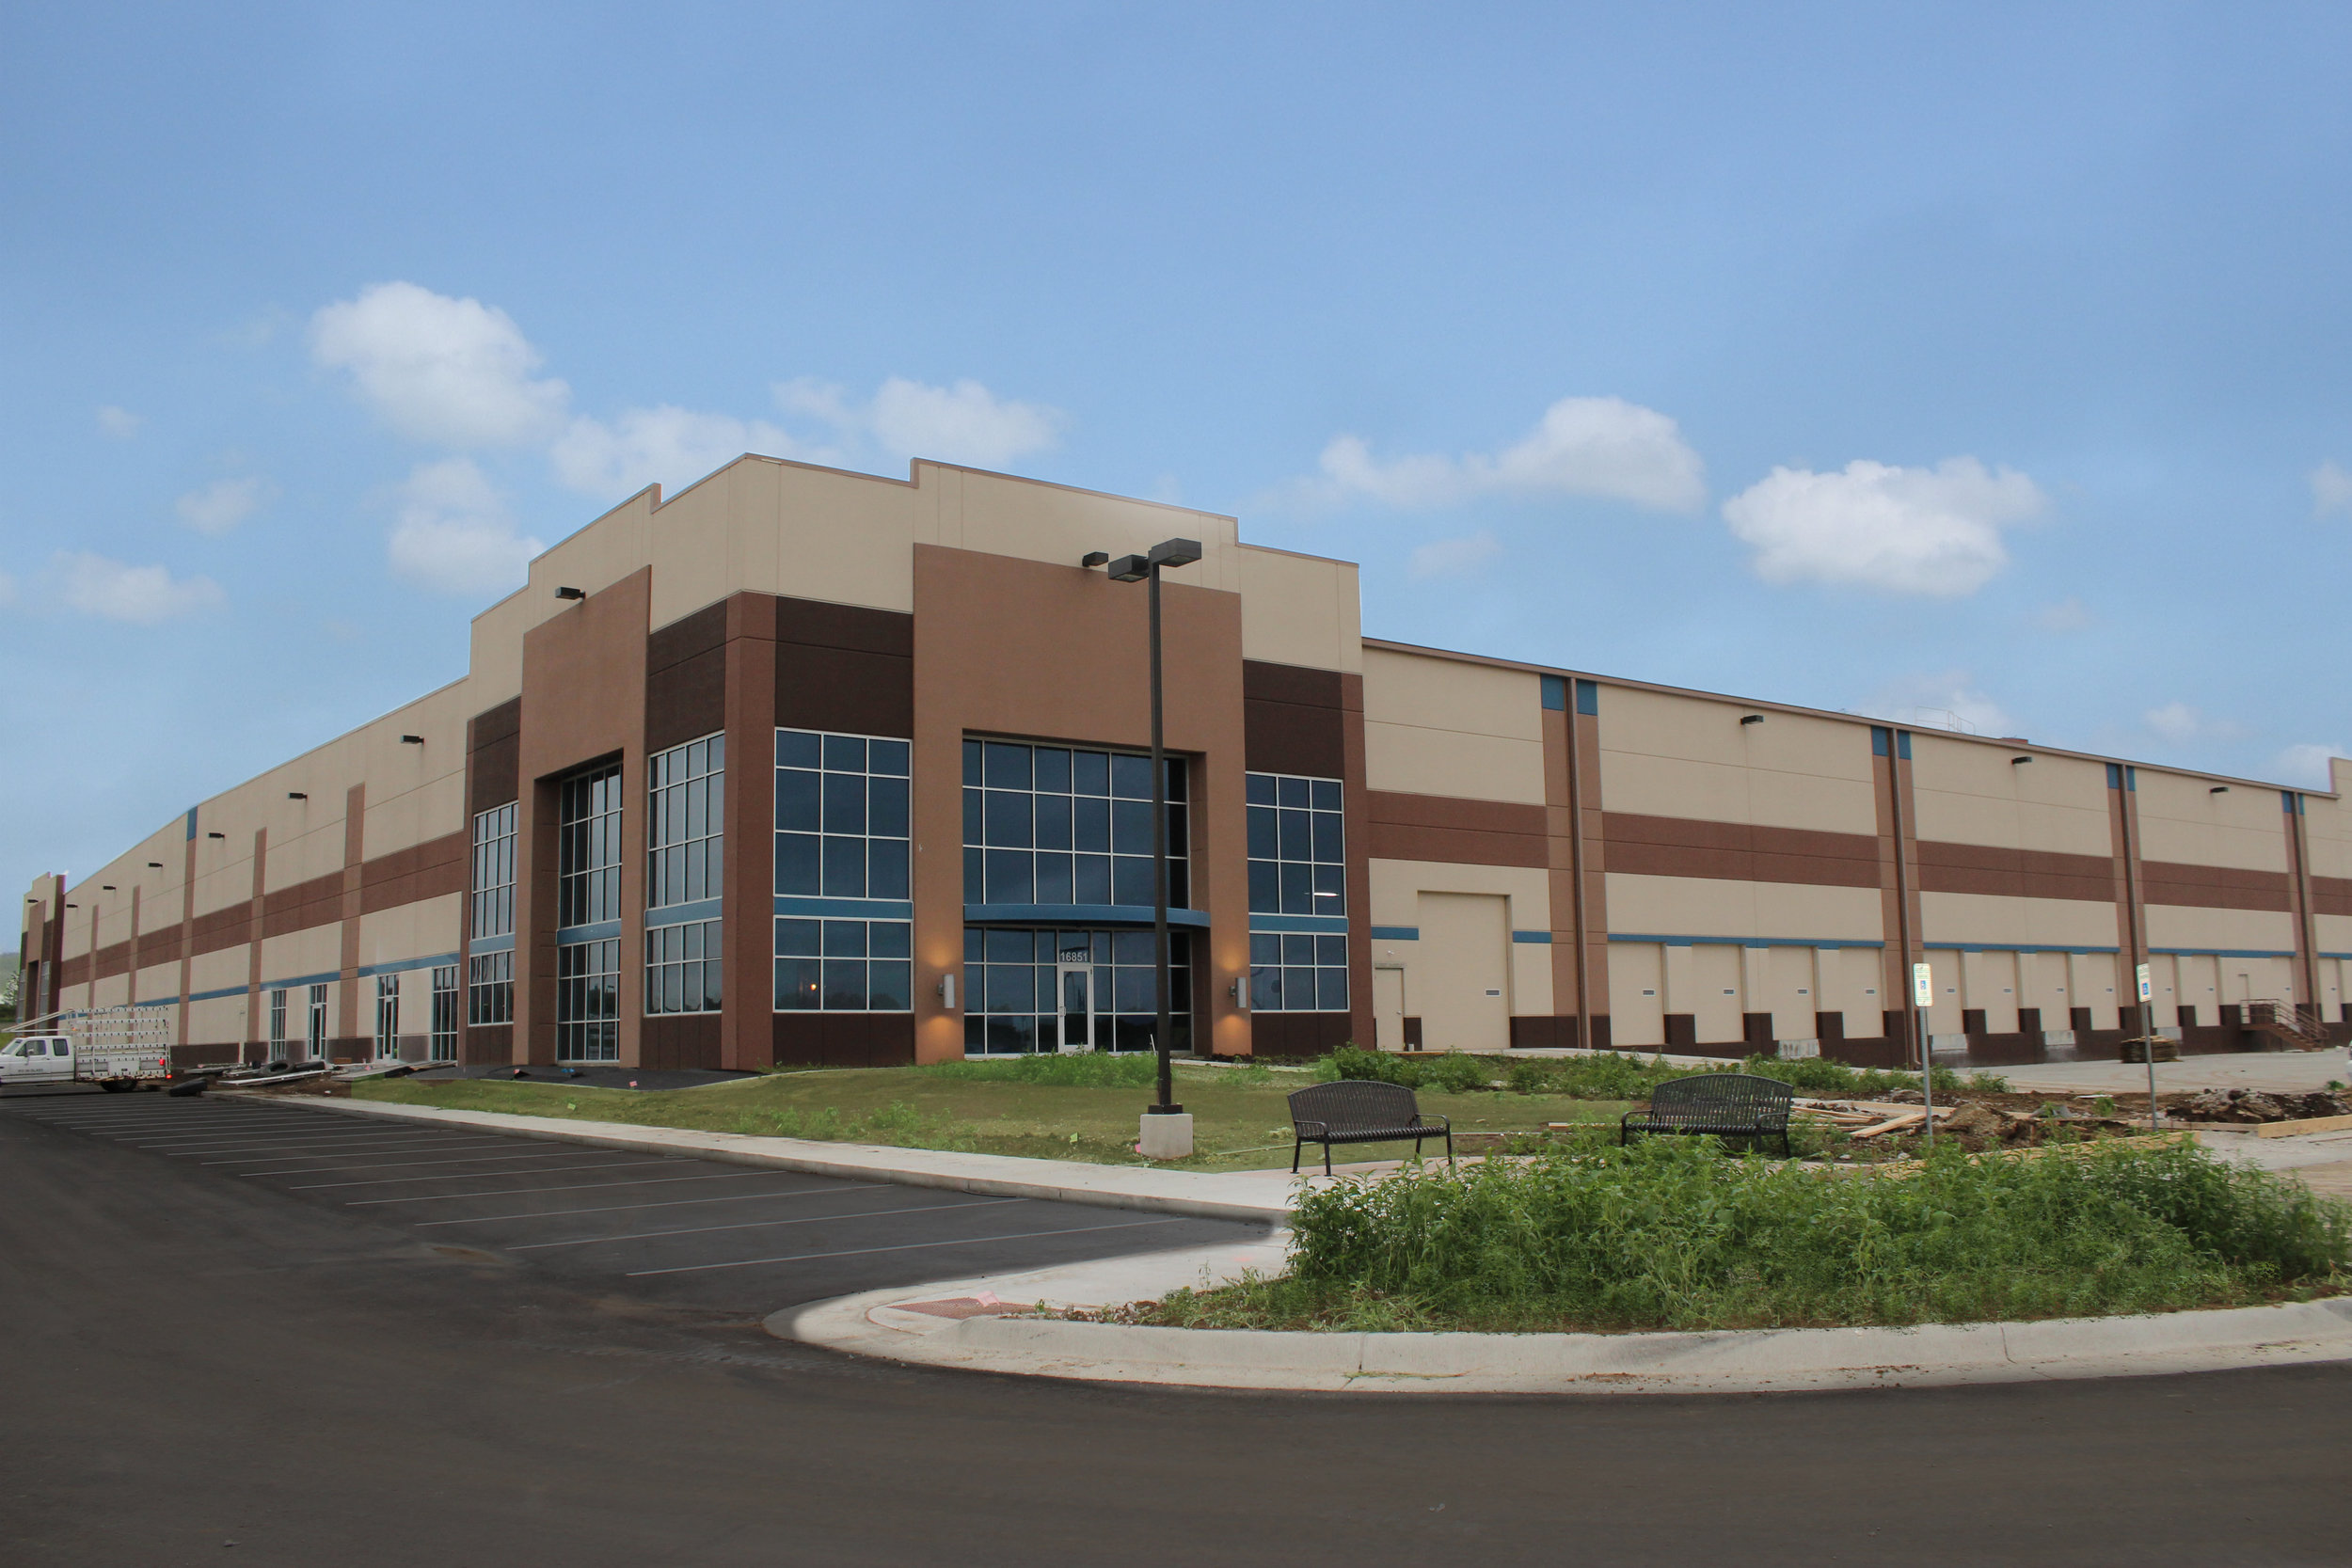 Amazon currently fully occupies Lenexa Logistics Centre 4, which is under new ownership.